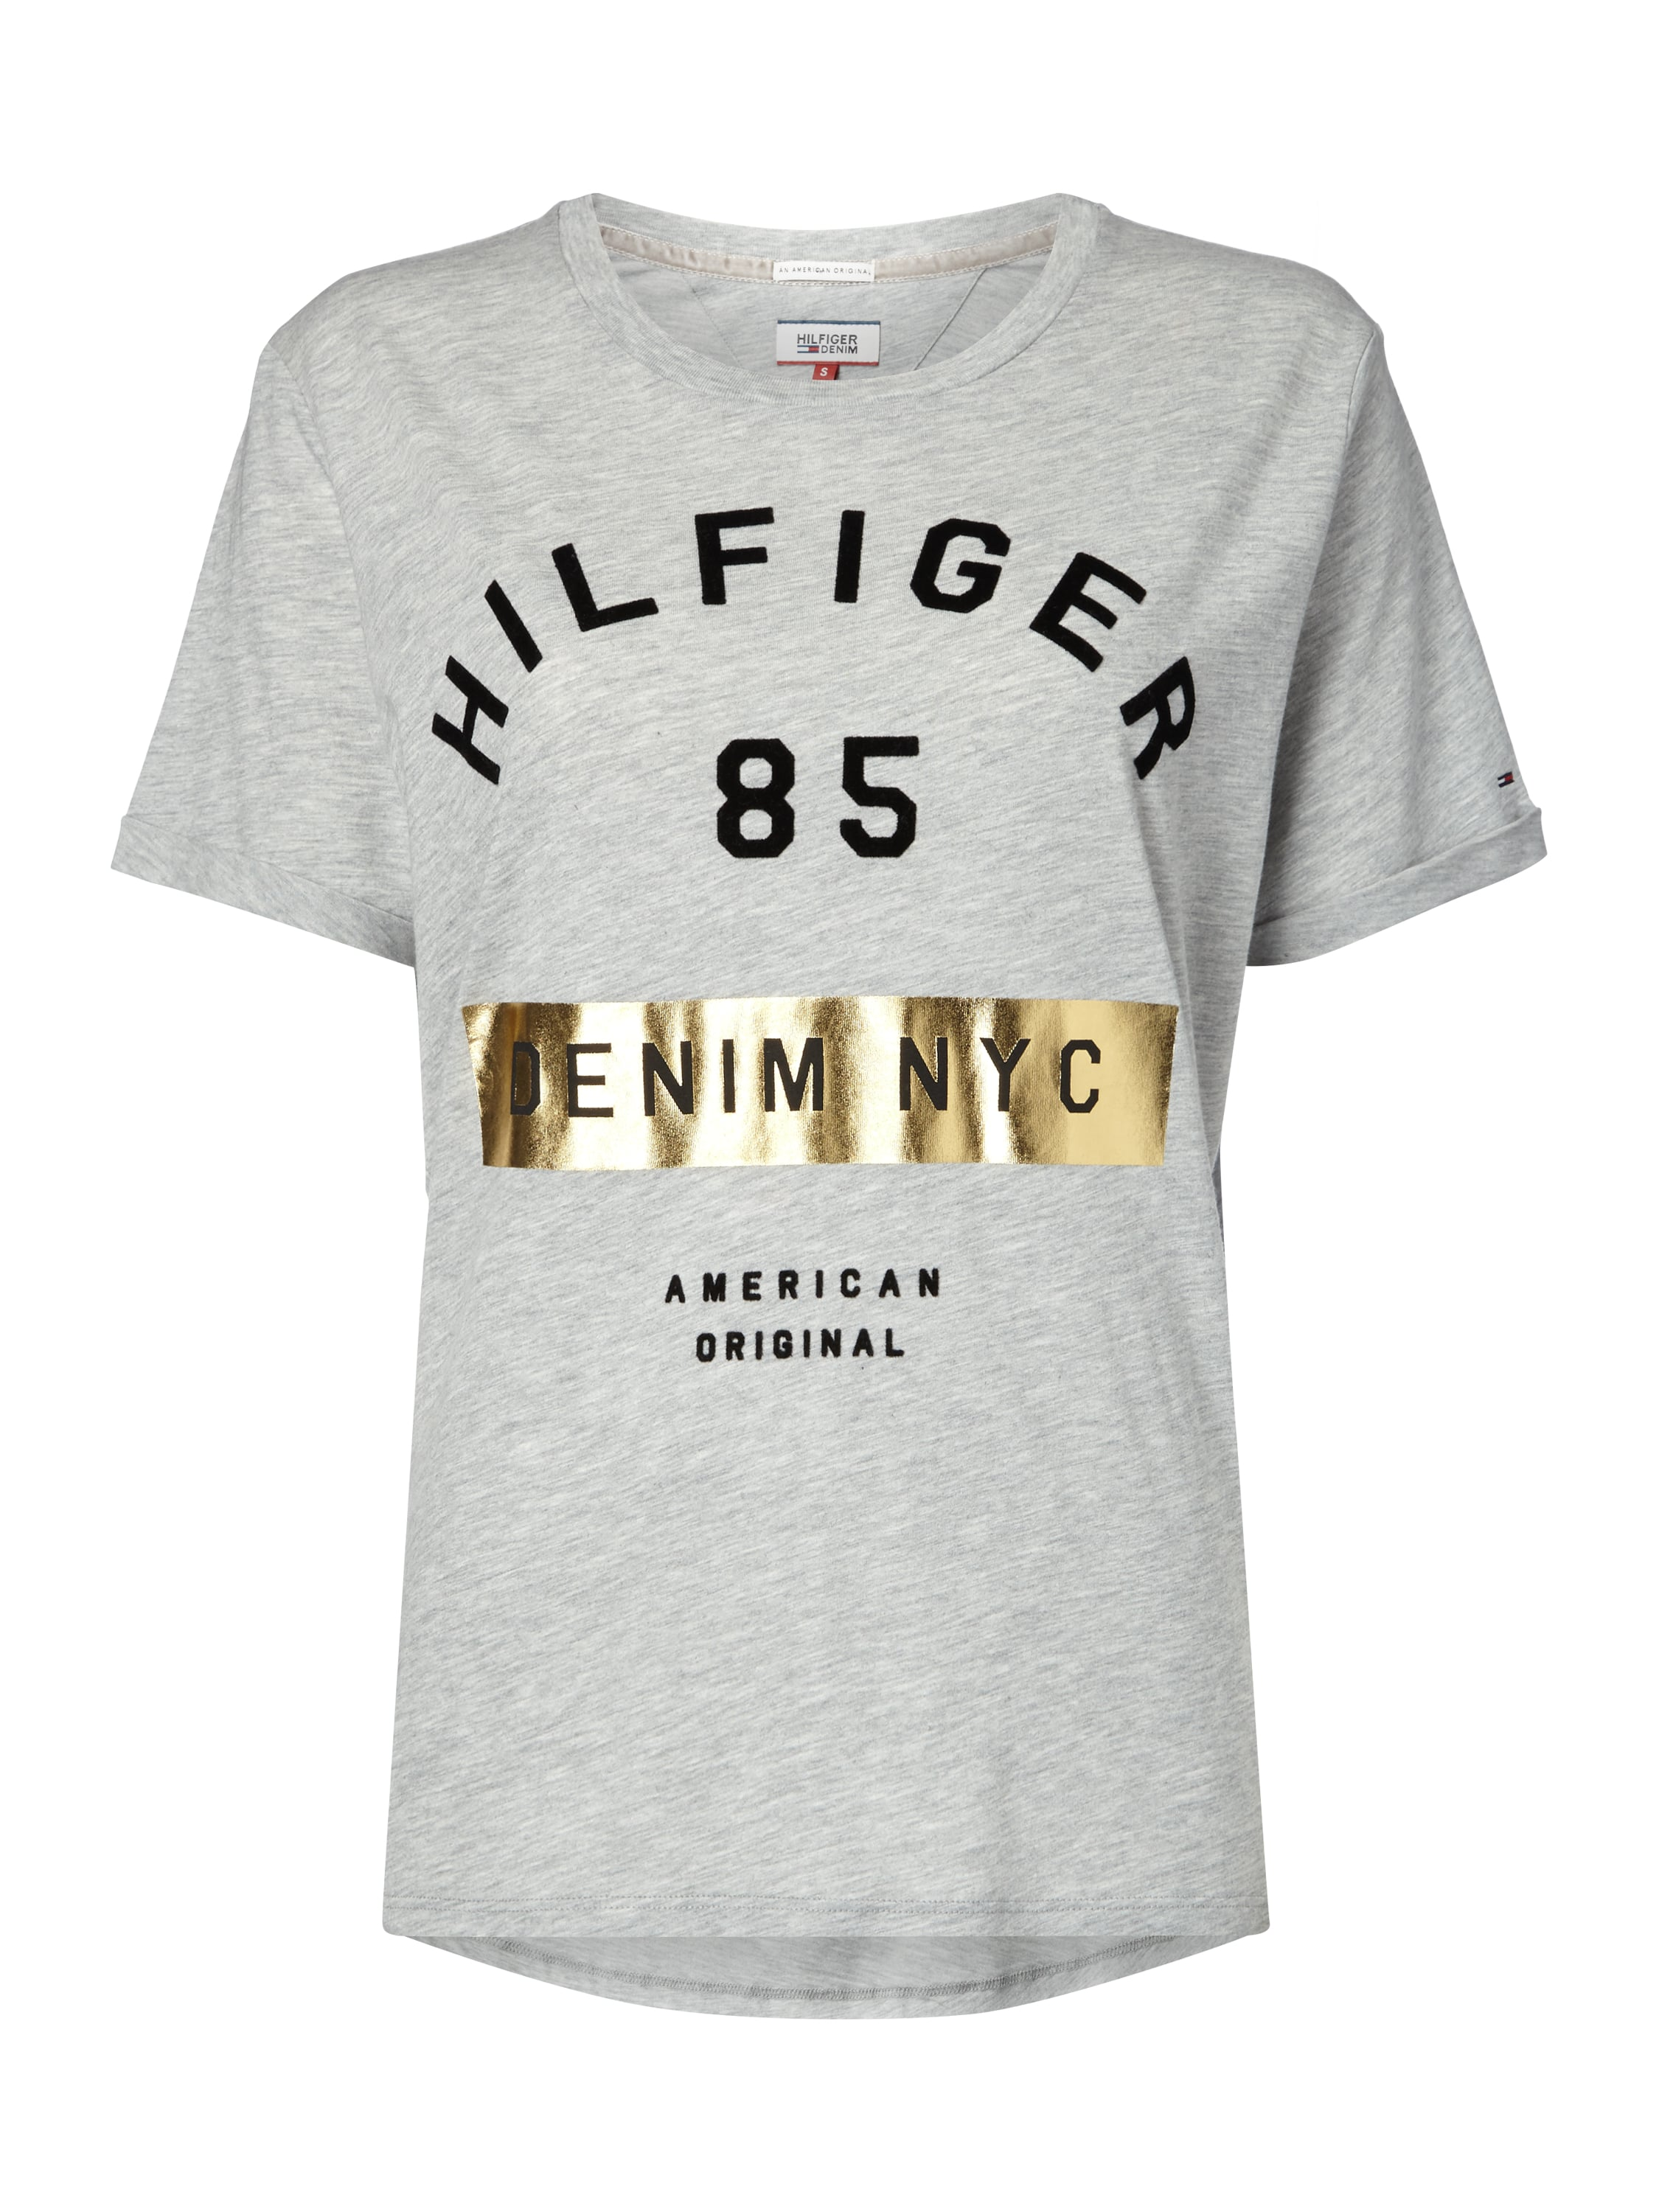 hilfiger denim t shirt mit gro em logo print in grau. Black Bedroom Furniture Sets. Home Design Ideas